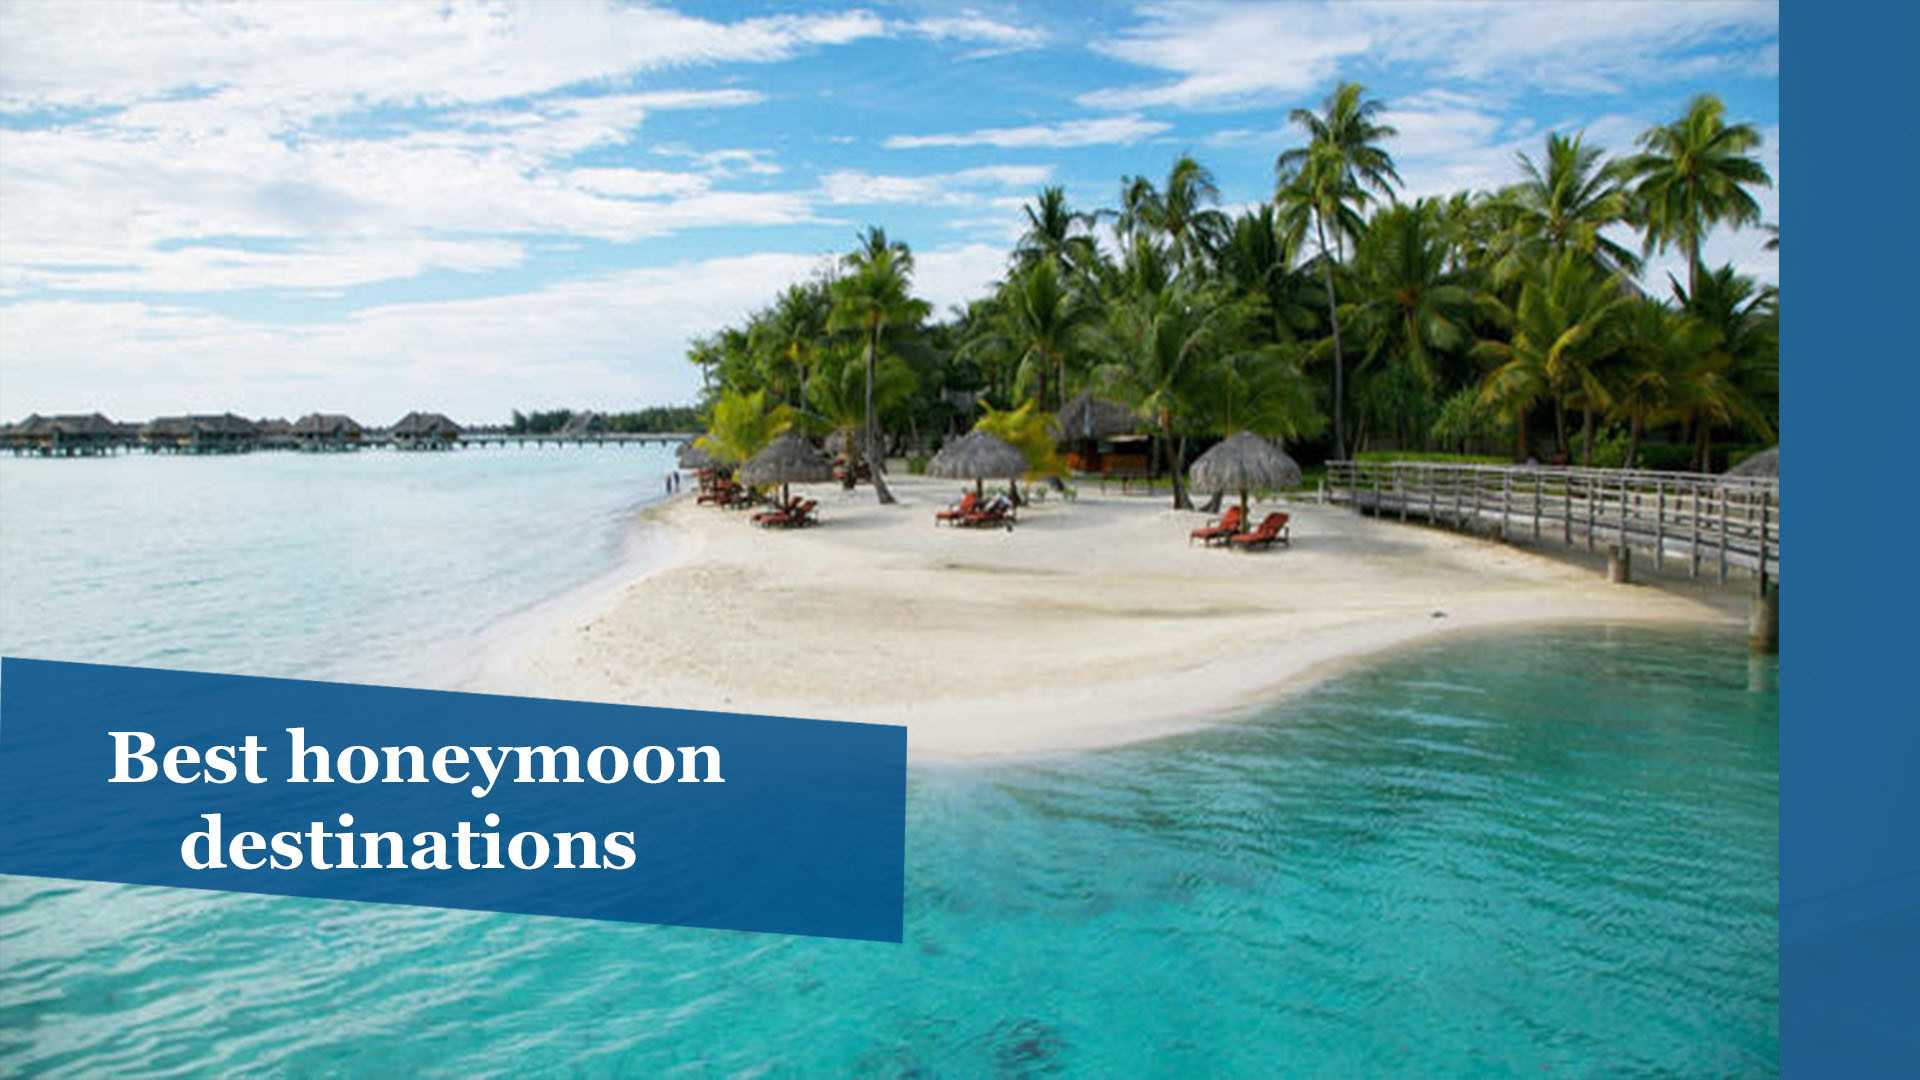 26 Best Honeymoon Destinations